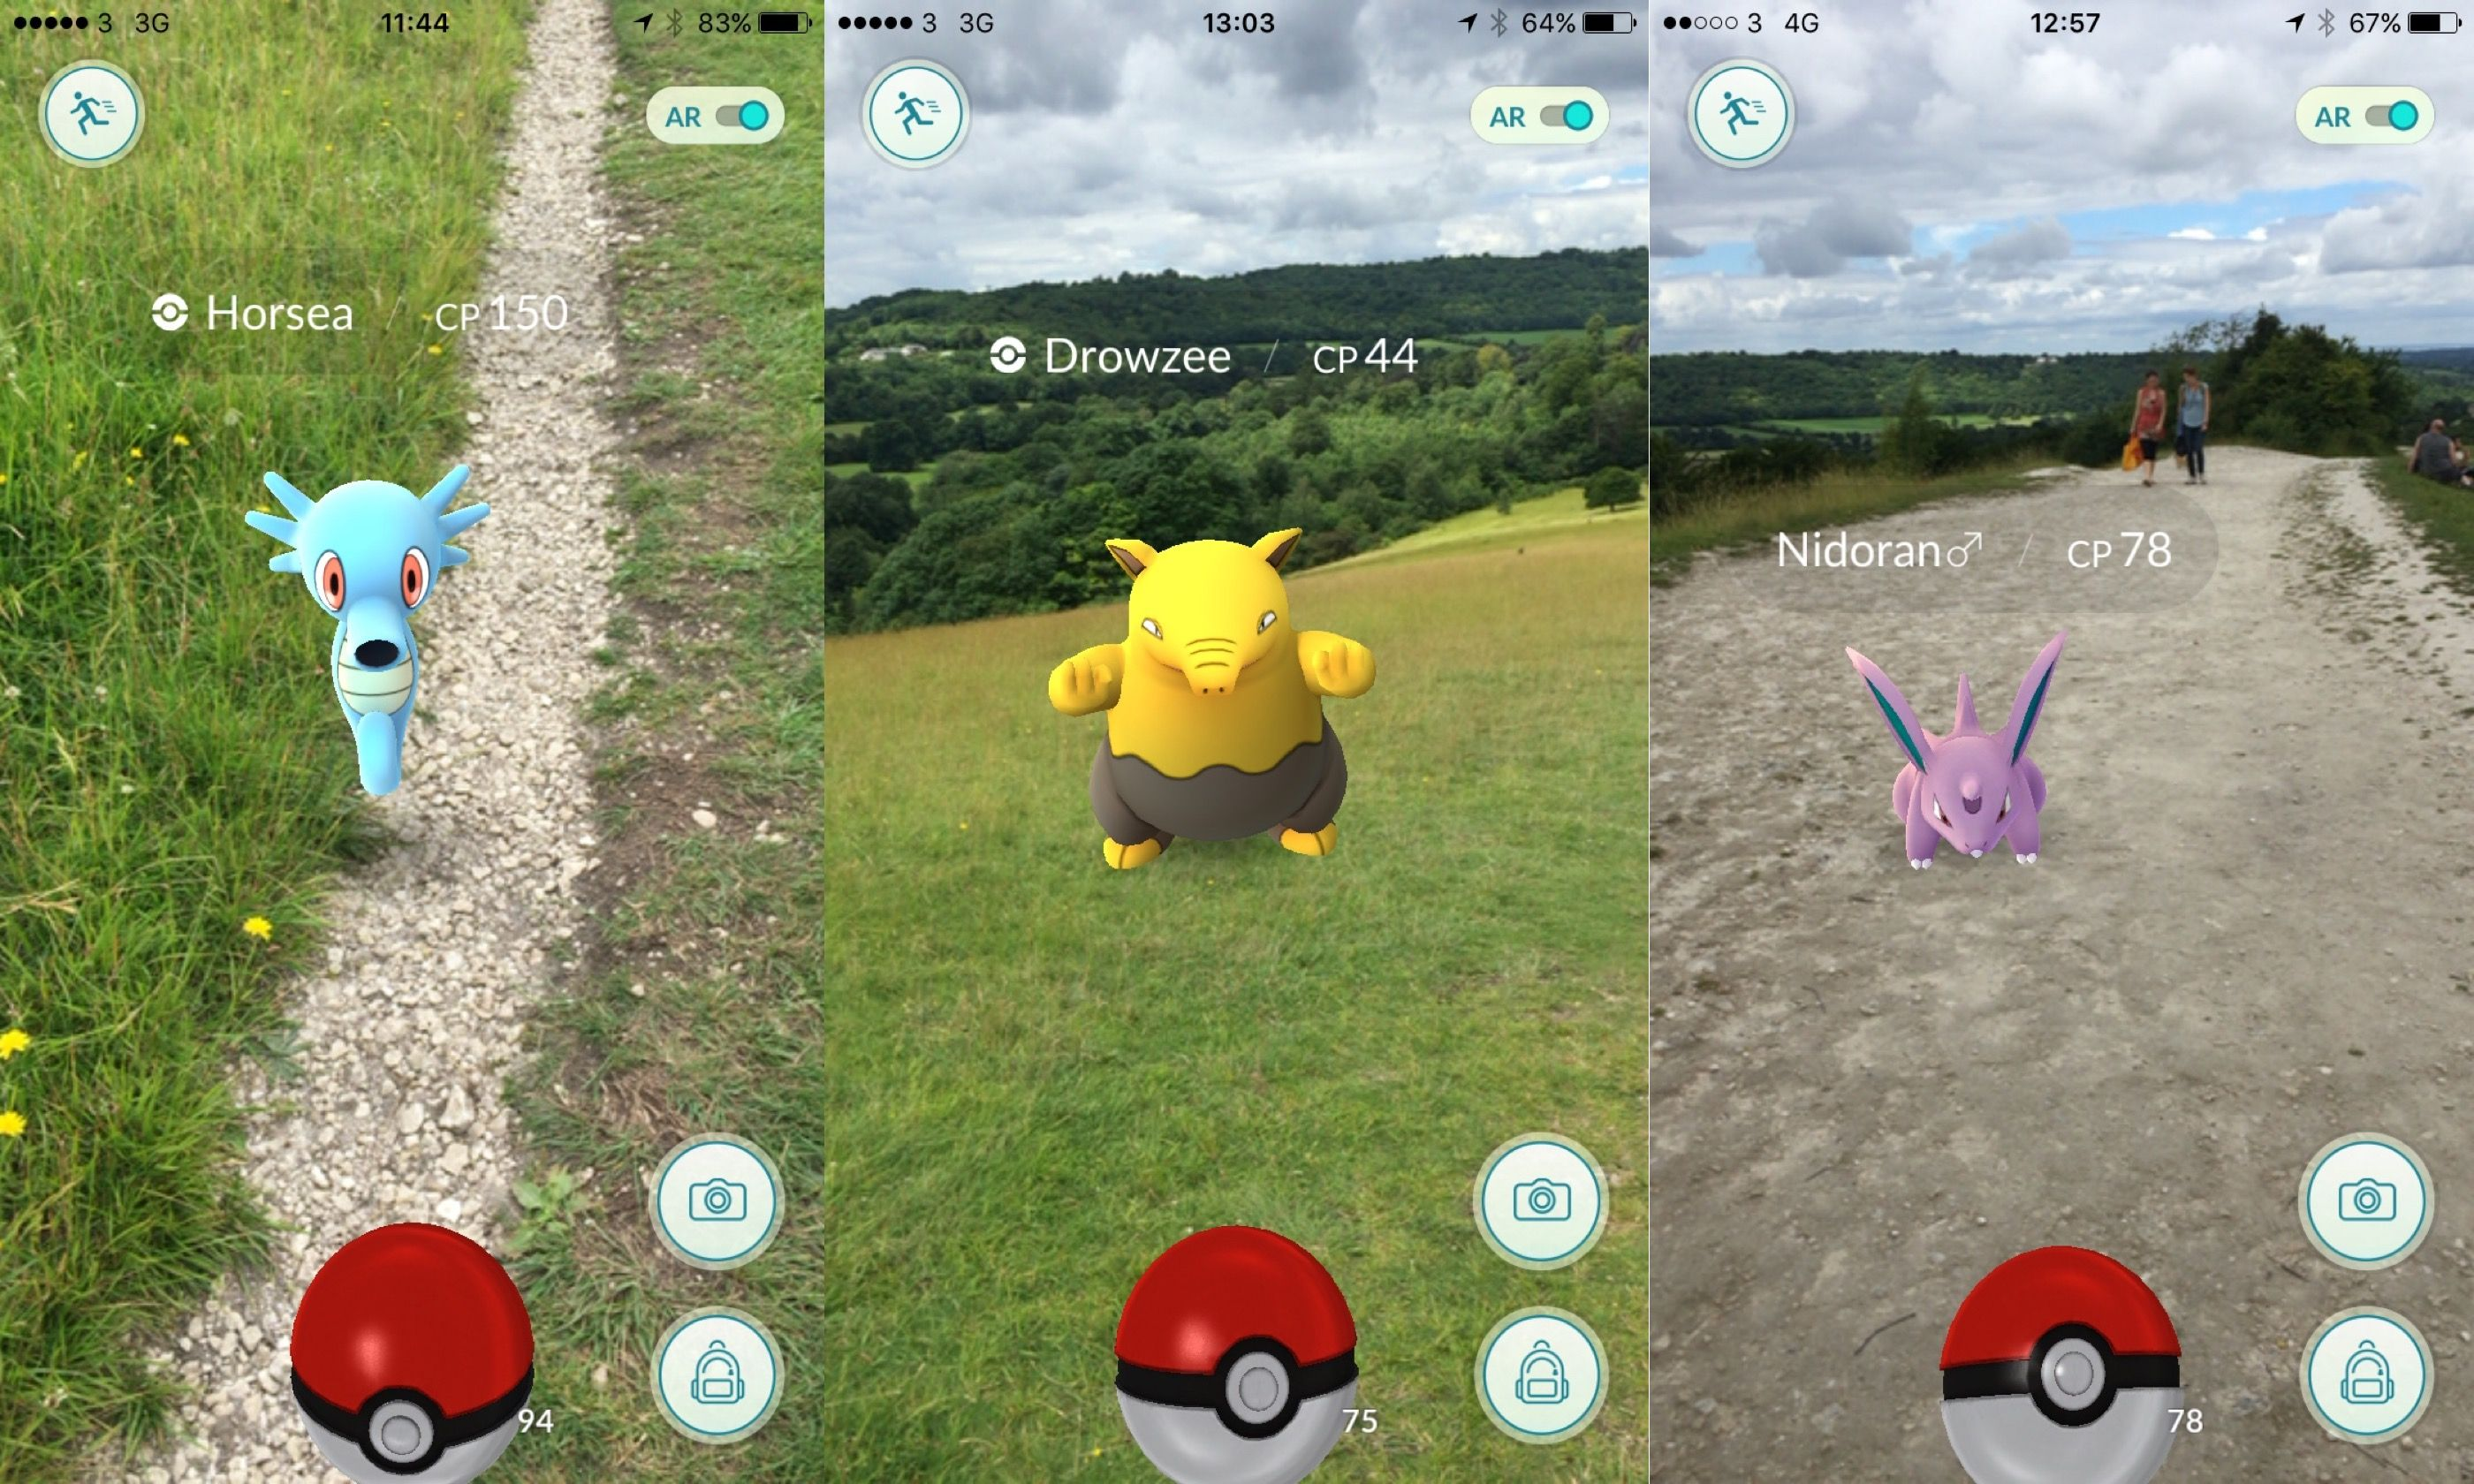 Pokémon on Box Hill